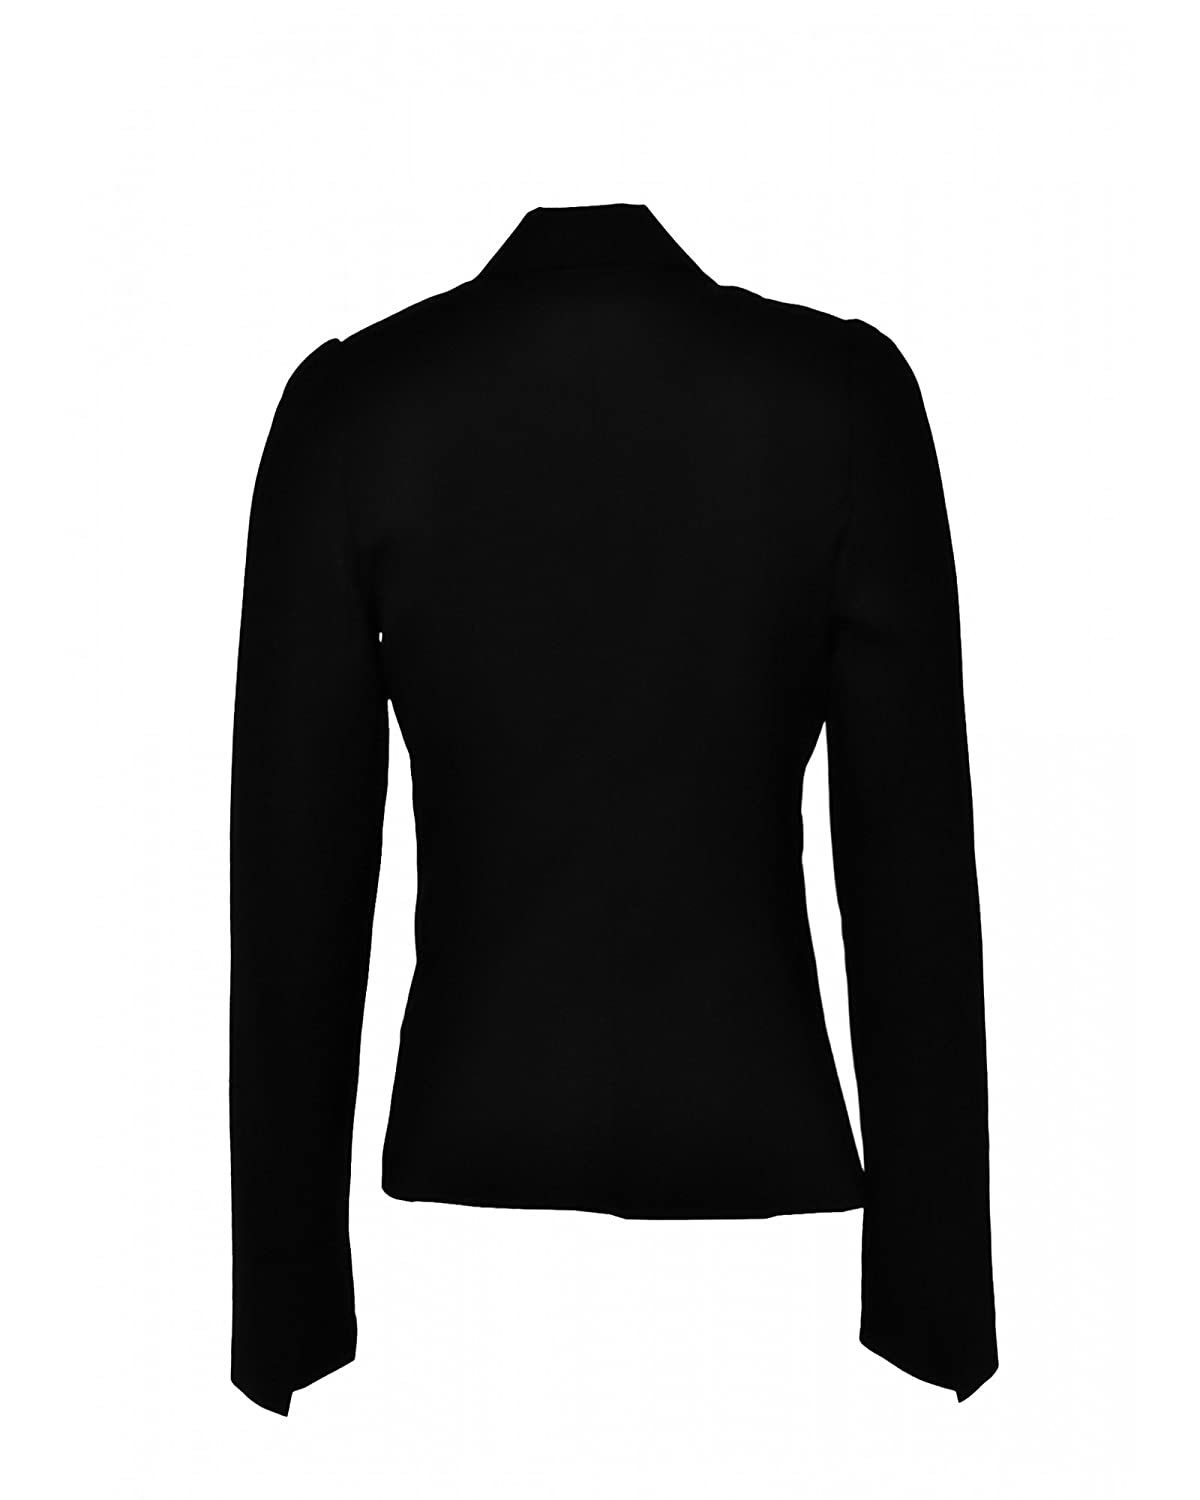 YES ZEE BY ESSENZA Chaqueta - Manga larga - para mujer negro ...